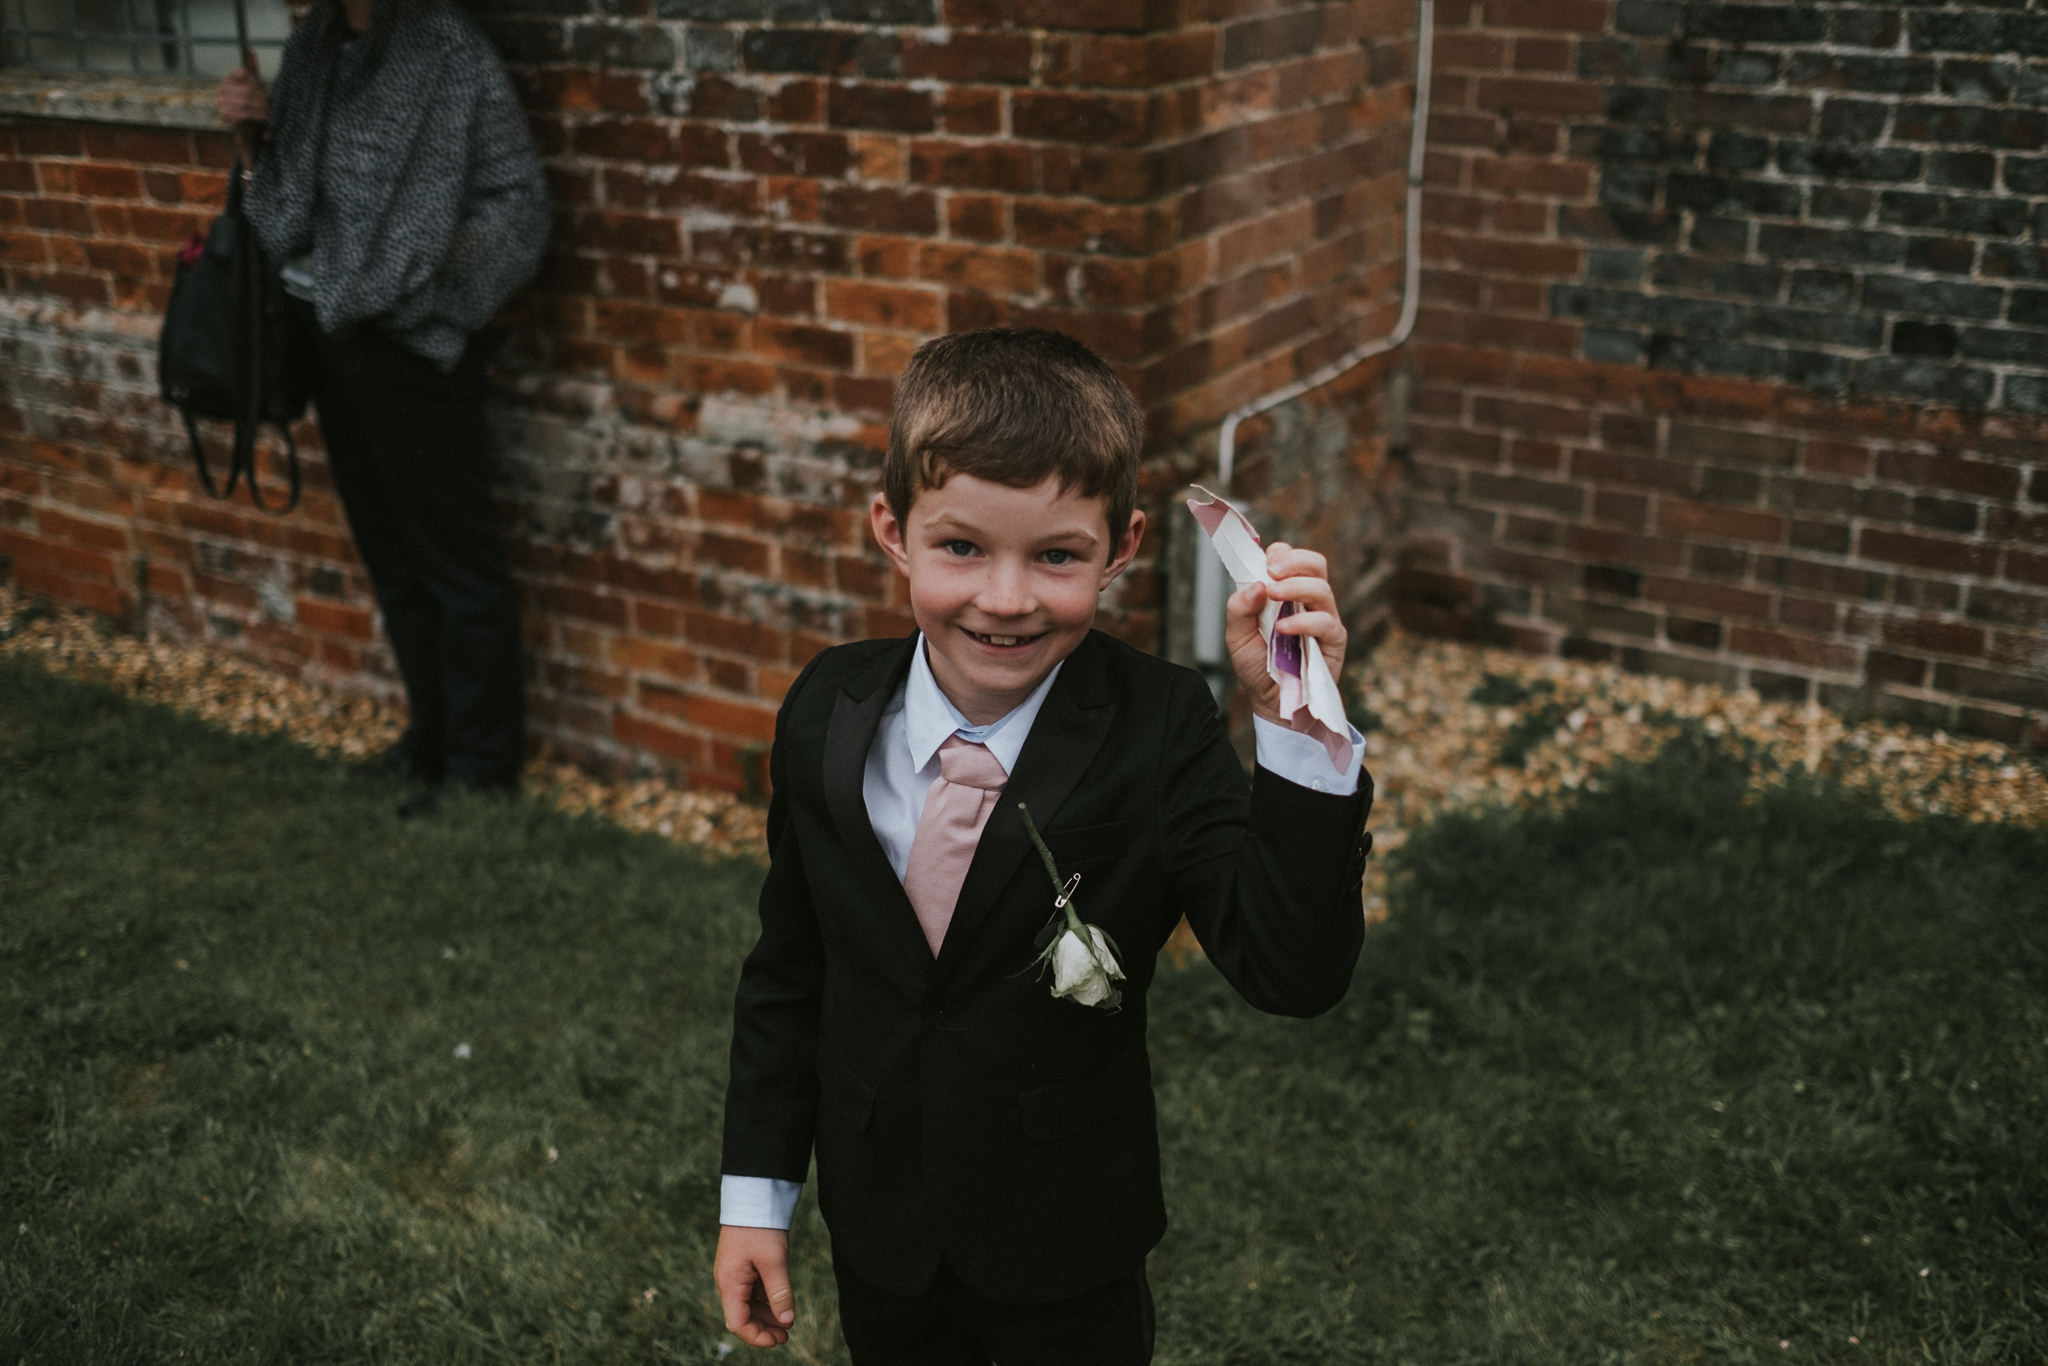 berkshire_wedding_photographer_emma_simon (177 of 327).jpg